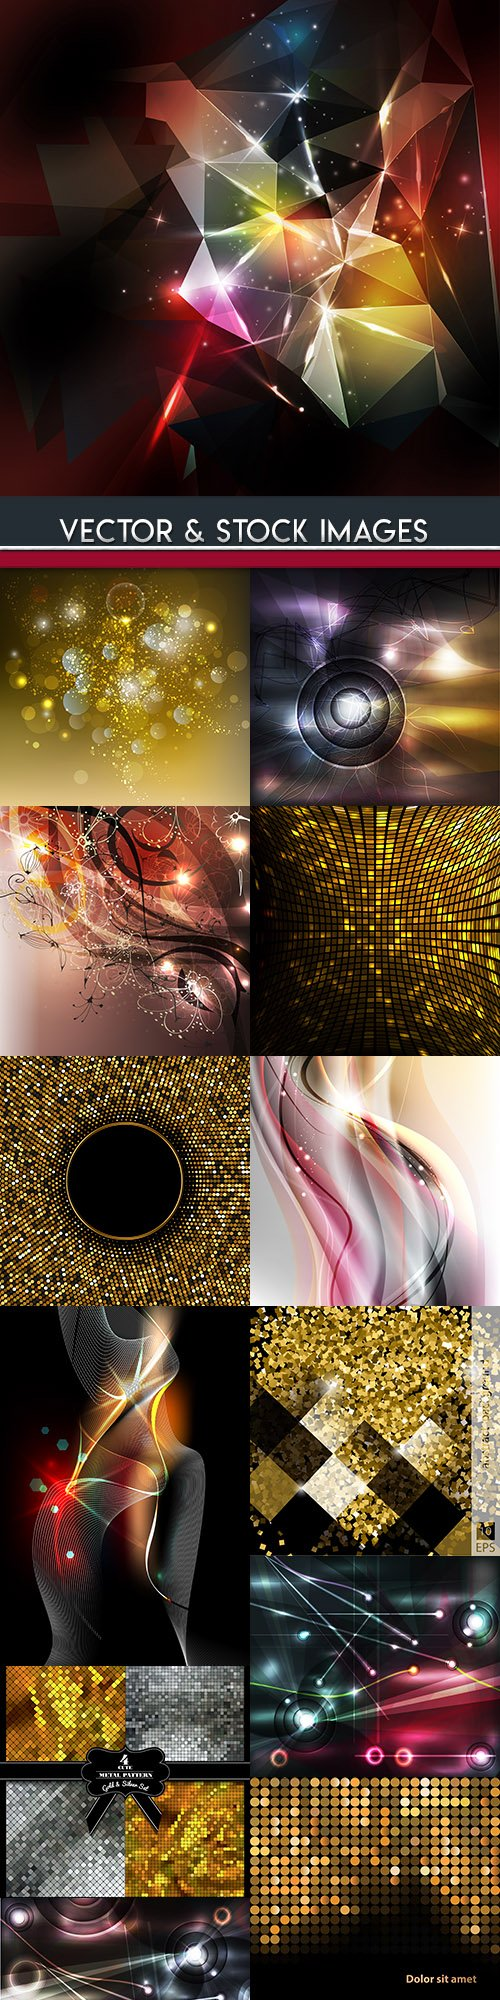 Bright light and gold abstract background collection